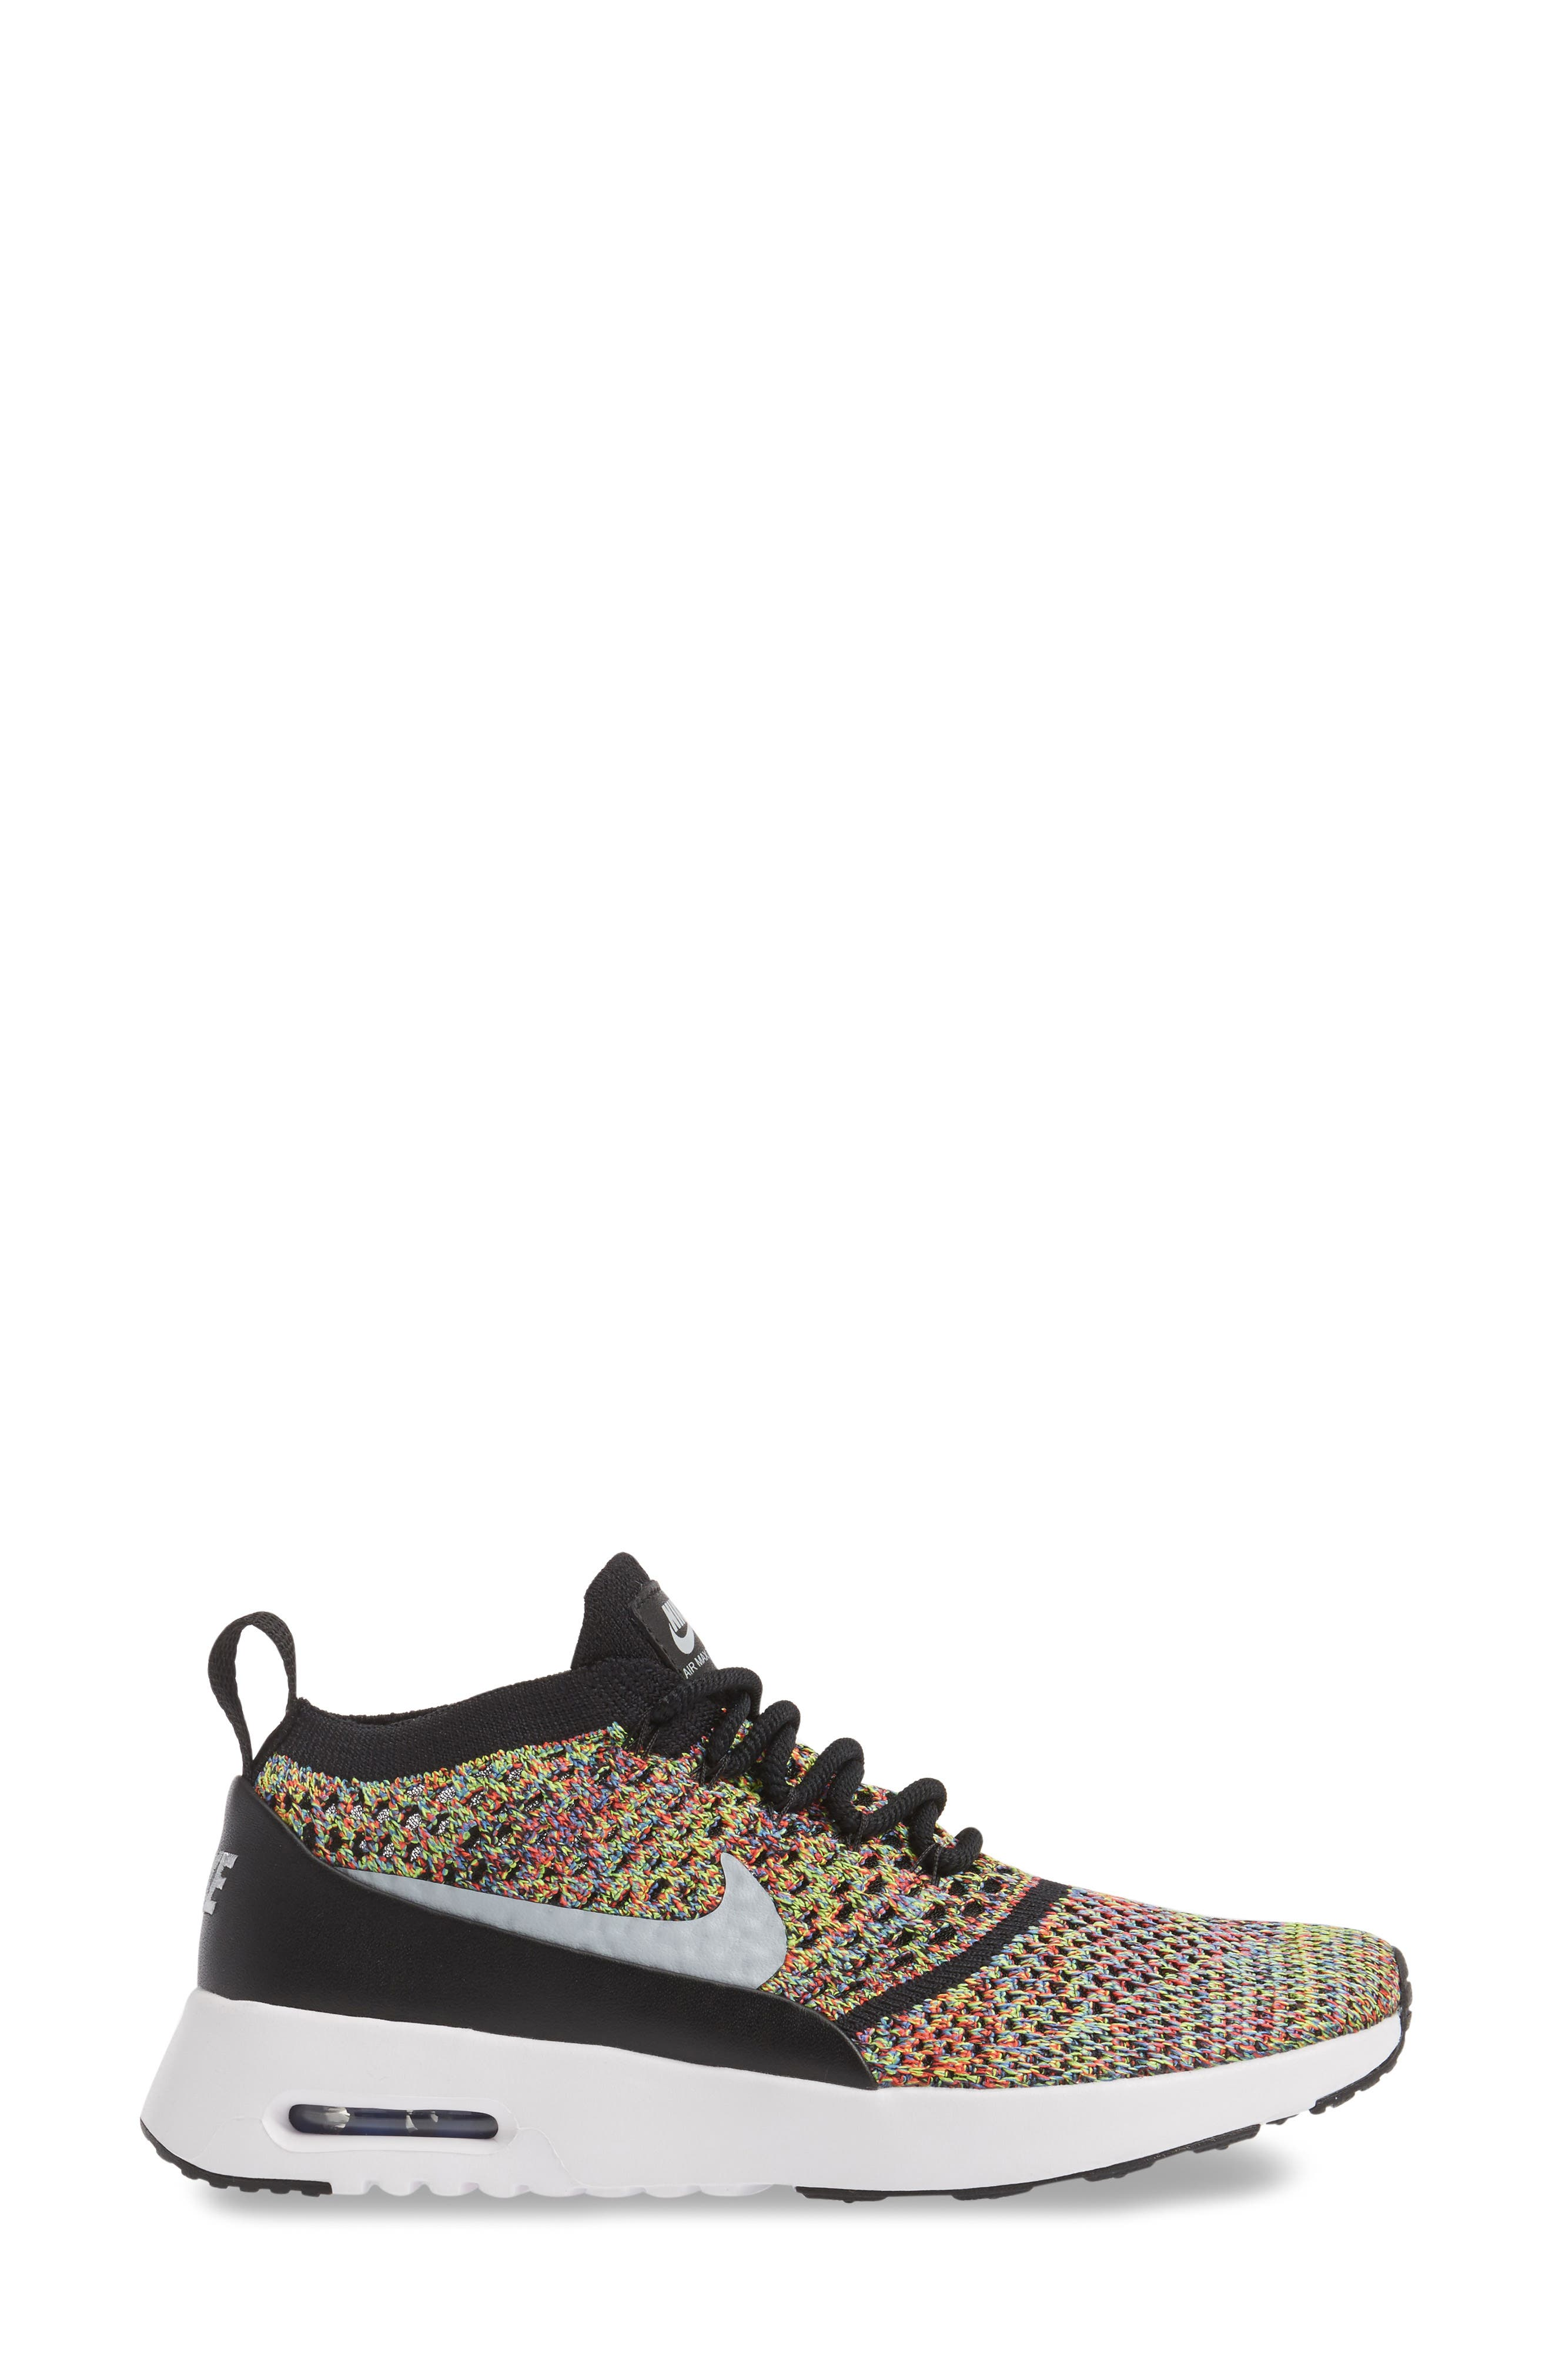 Air Max Thea Ultra Flyknit Sneaker,                             Alternate thumbnail 28, color,